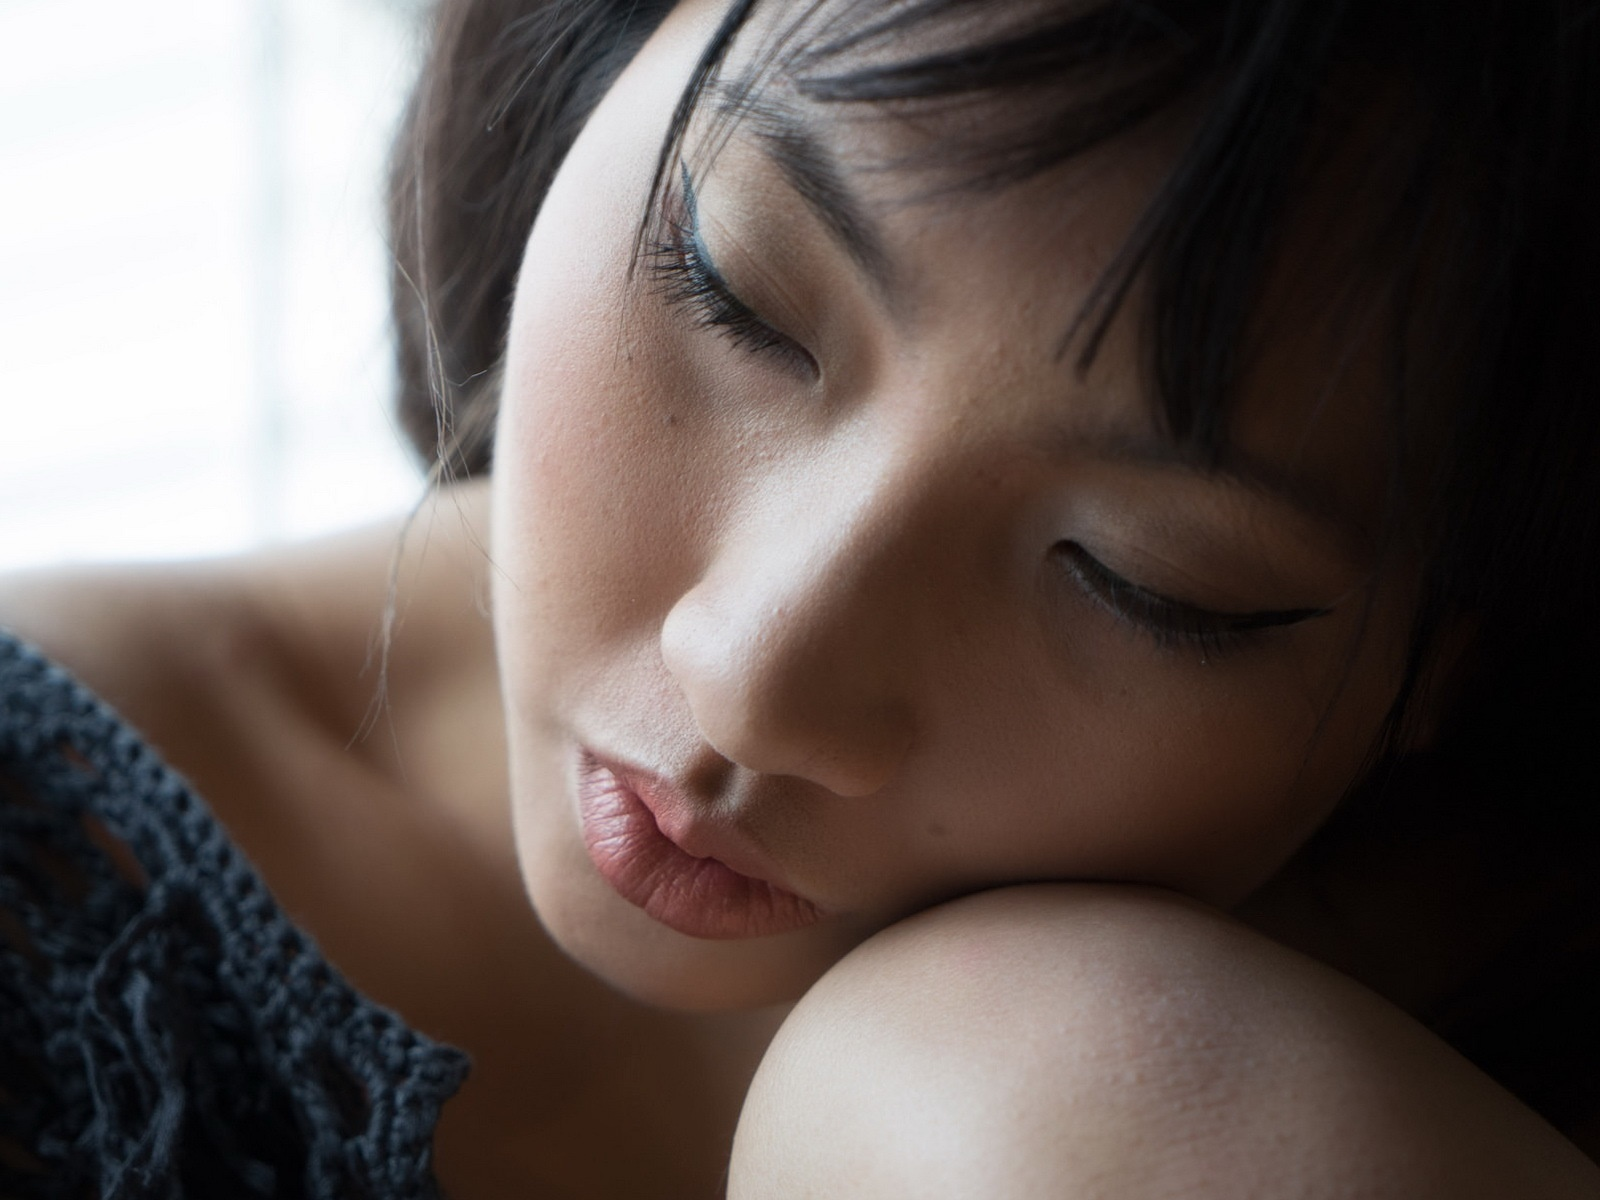 Asian girl sleeping 1600x1200 wallpaper